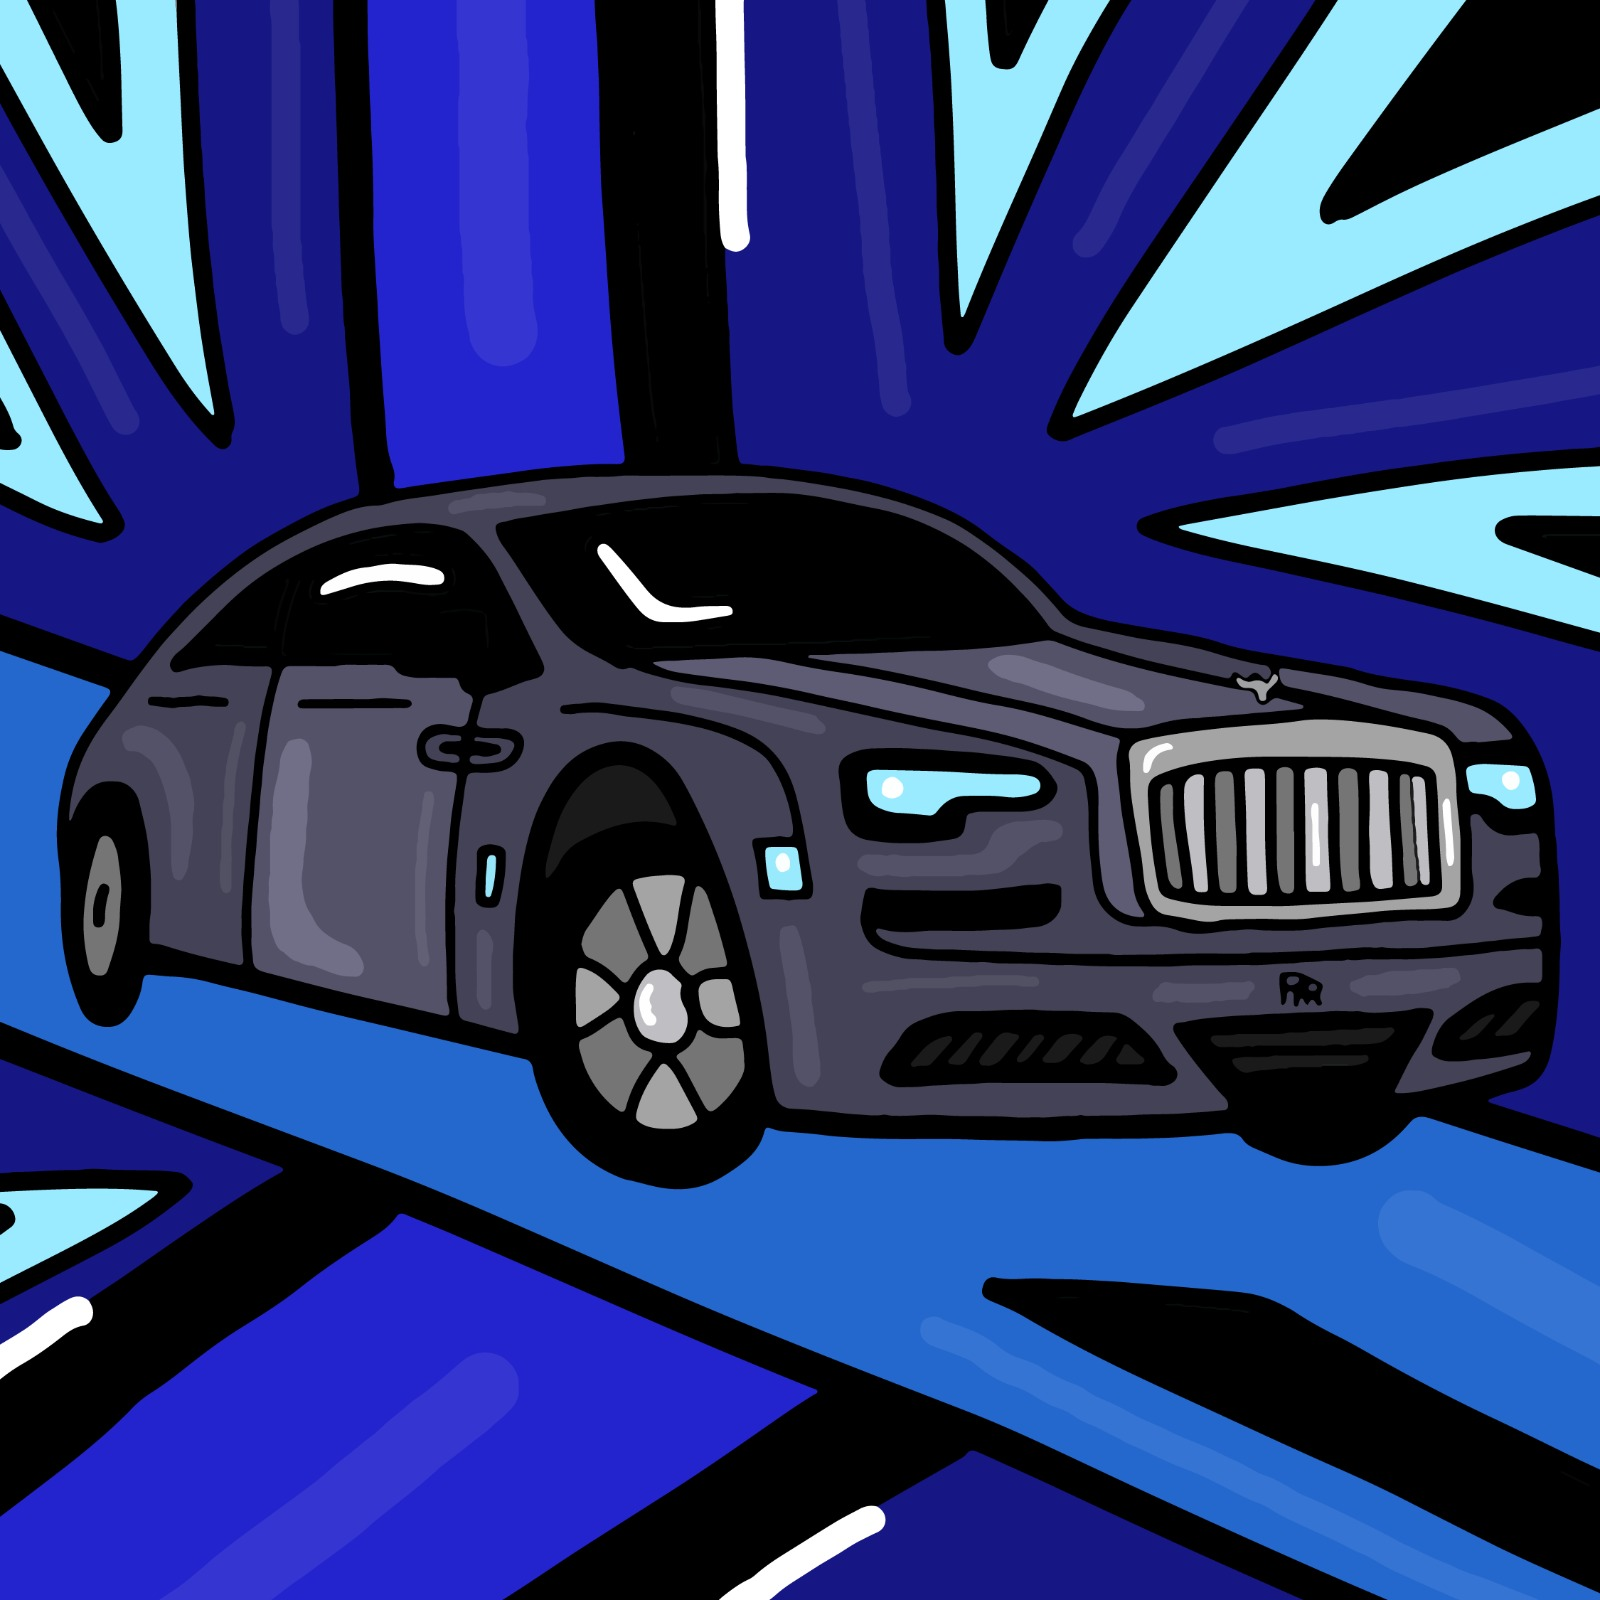 Rolls-Royce illustration by Mina Tocalini